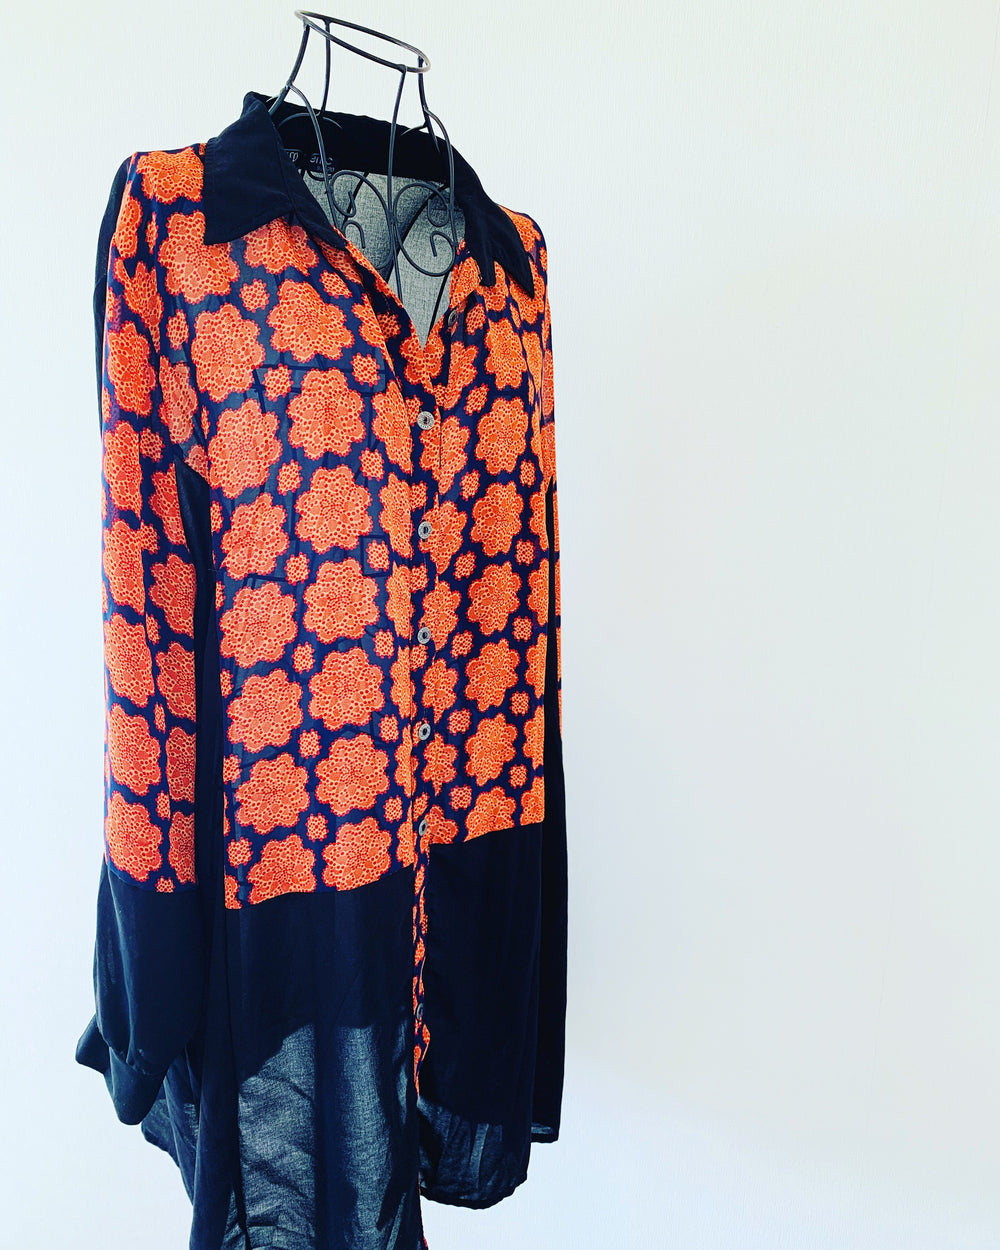 Preloved // METRIC Orange & Black Patterned Shirt // Size 20